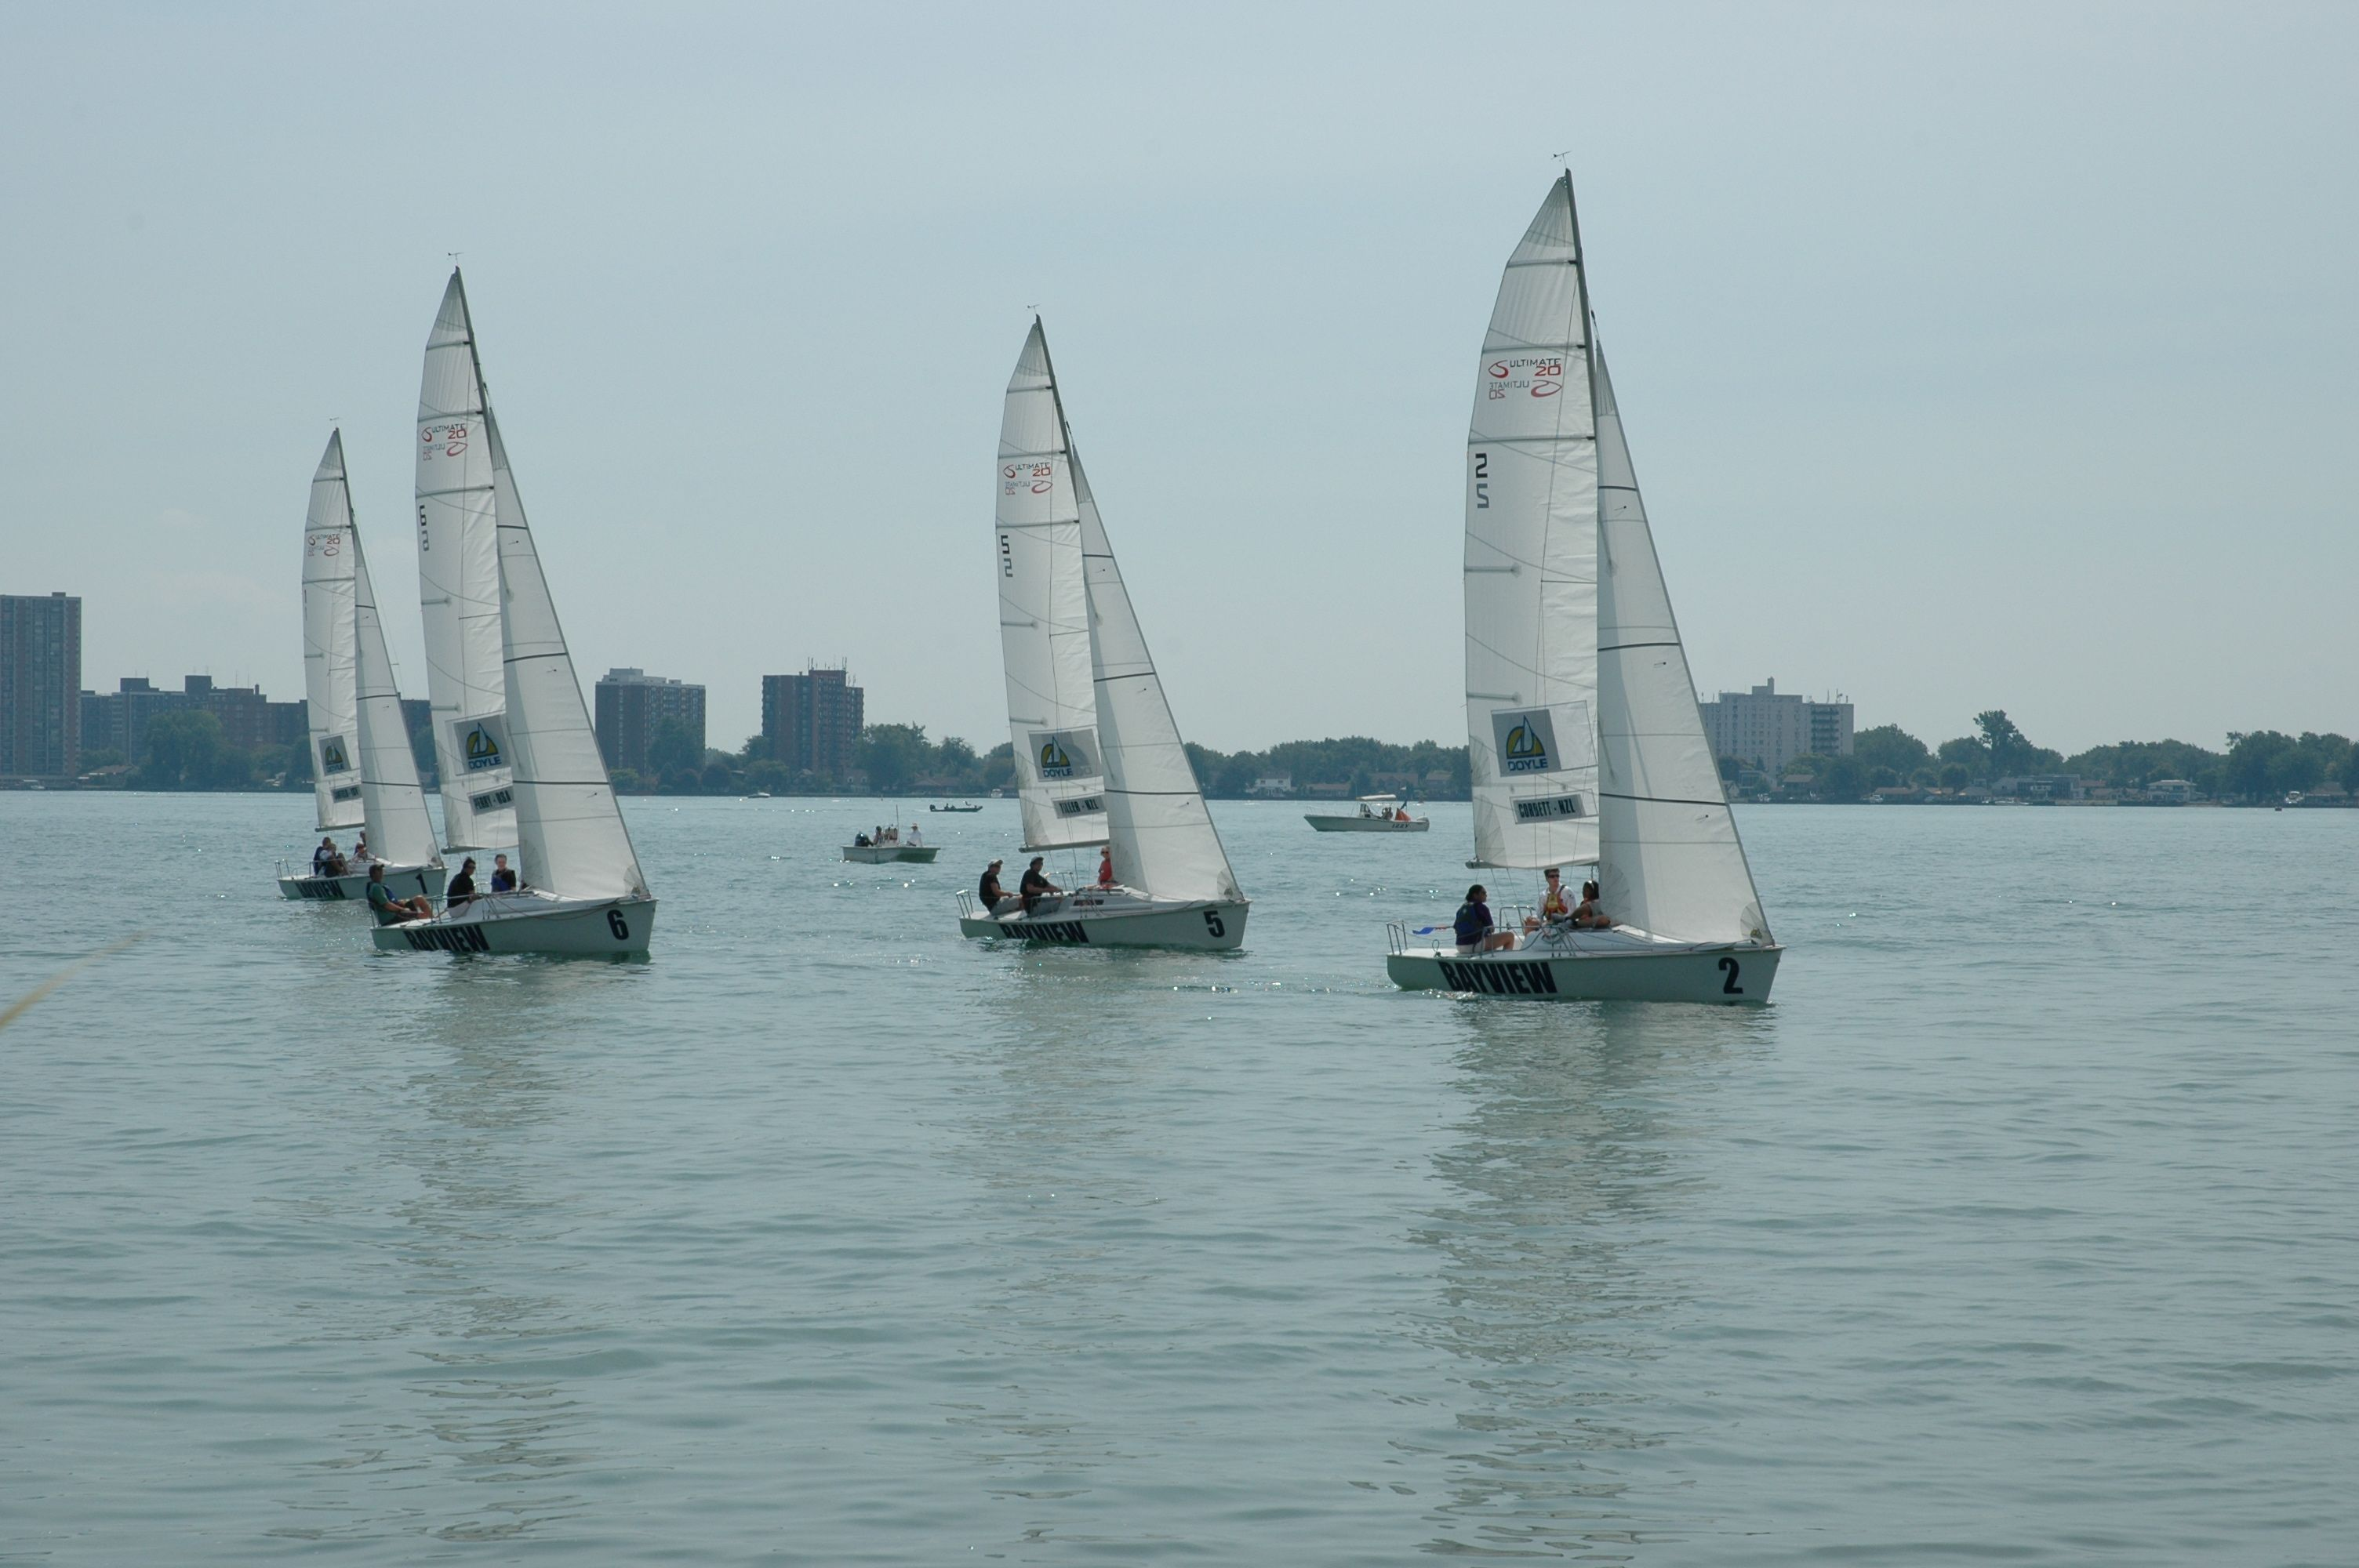 ultimate 20 | my2fish: a blog about sunfish sailing